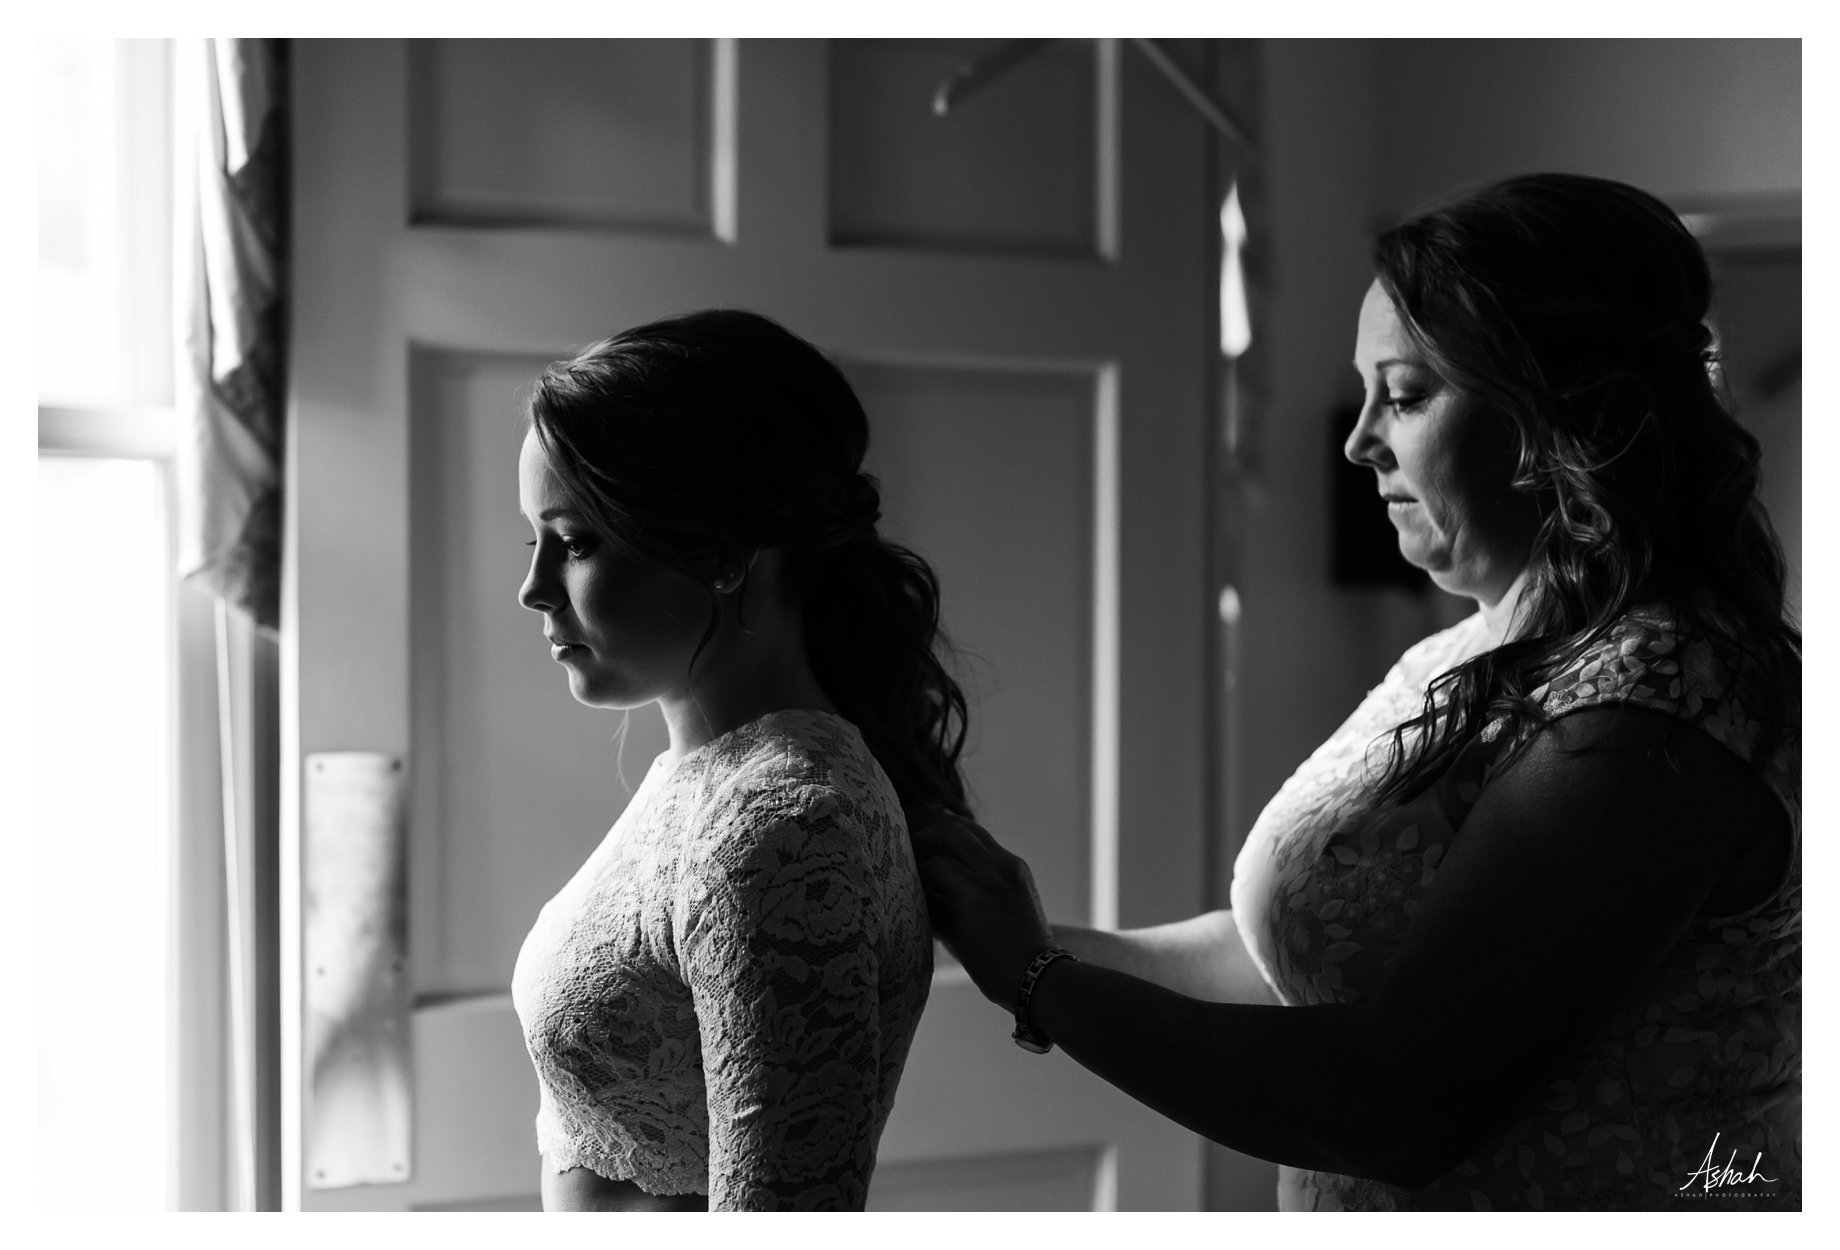 Bride in Profile - Black and White - Dublin Wedding Photography